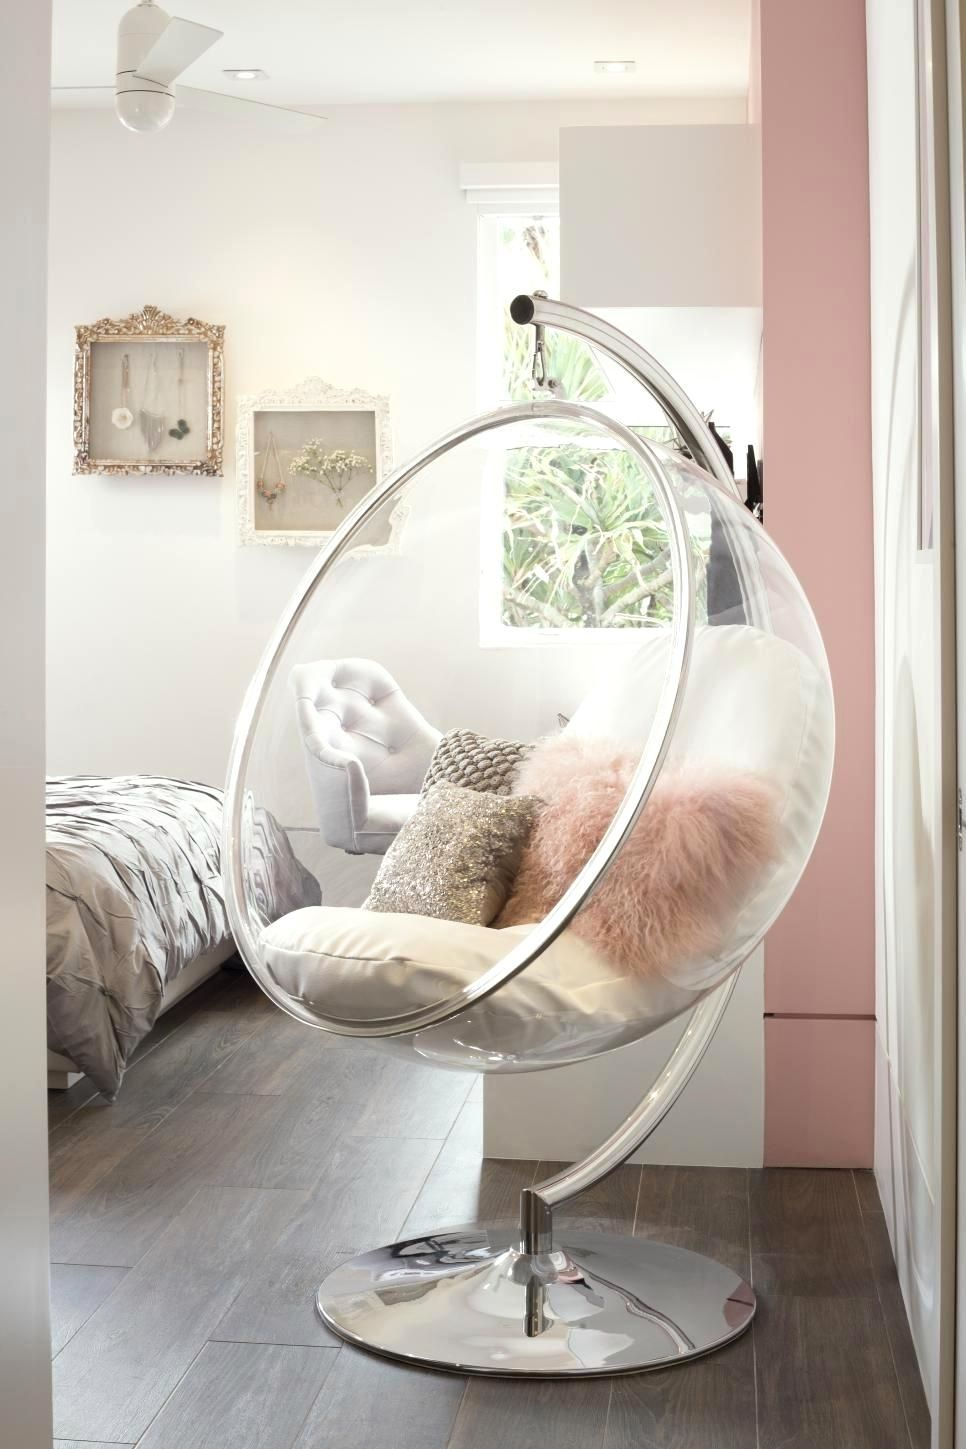 10 Chairs For Girls Room Most Brilliant as well as Attractive #girlrooms